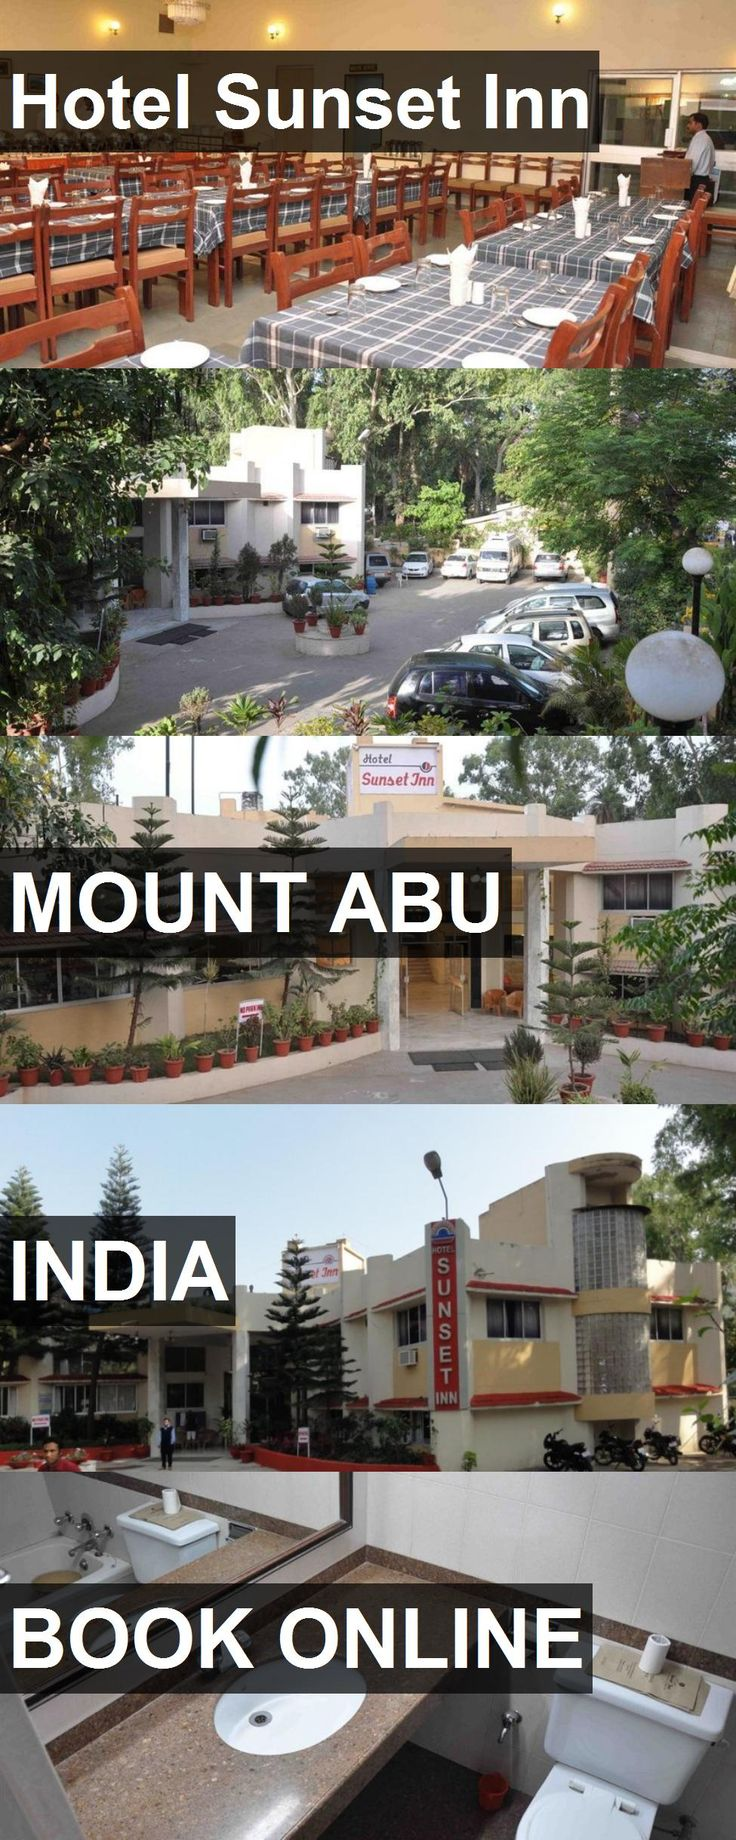 Hotel Hotel Sunset Inn in Mount Abu, India. For more information, photos, reviews and best prices please follow the link. #India #MountAbu #HotelSunsetInn #hotel #travel #vacation